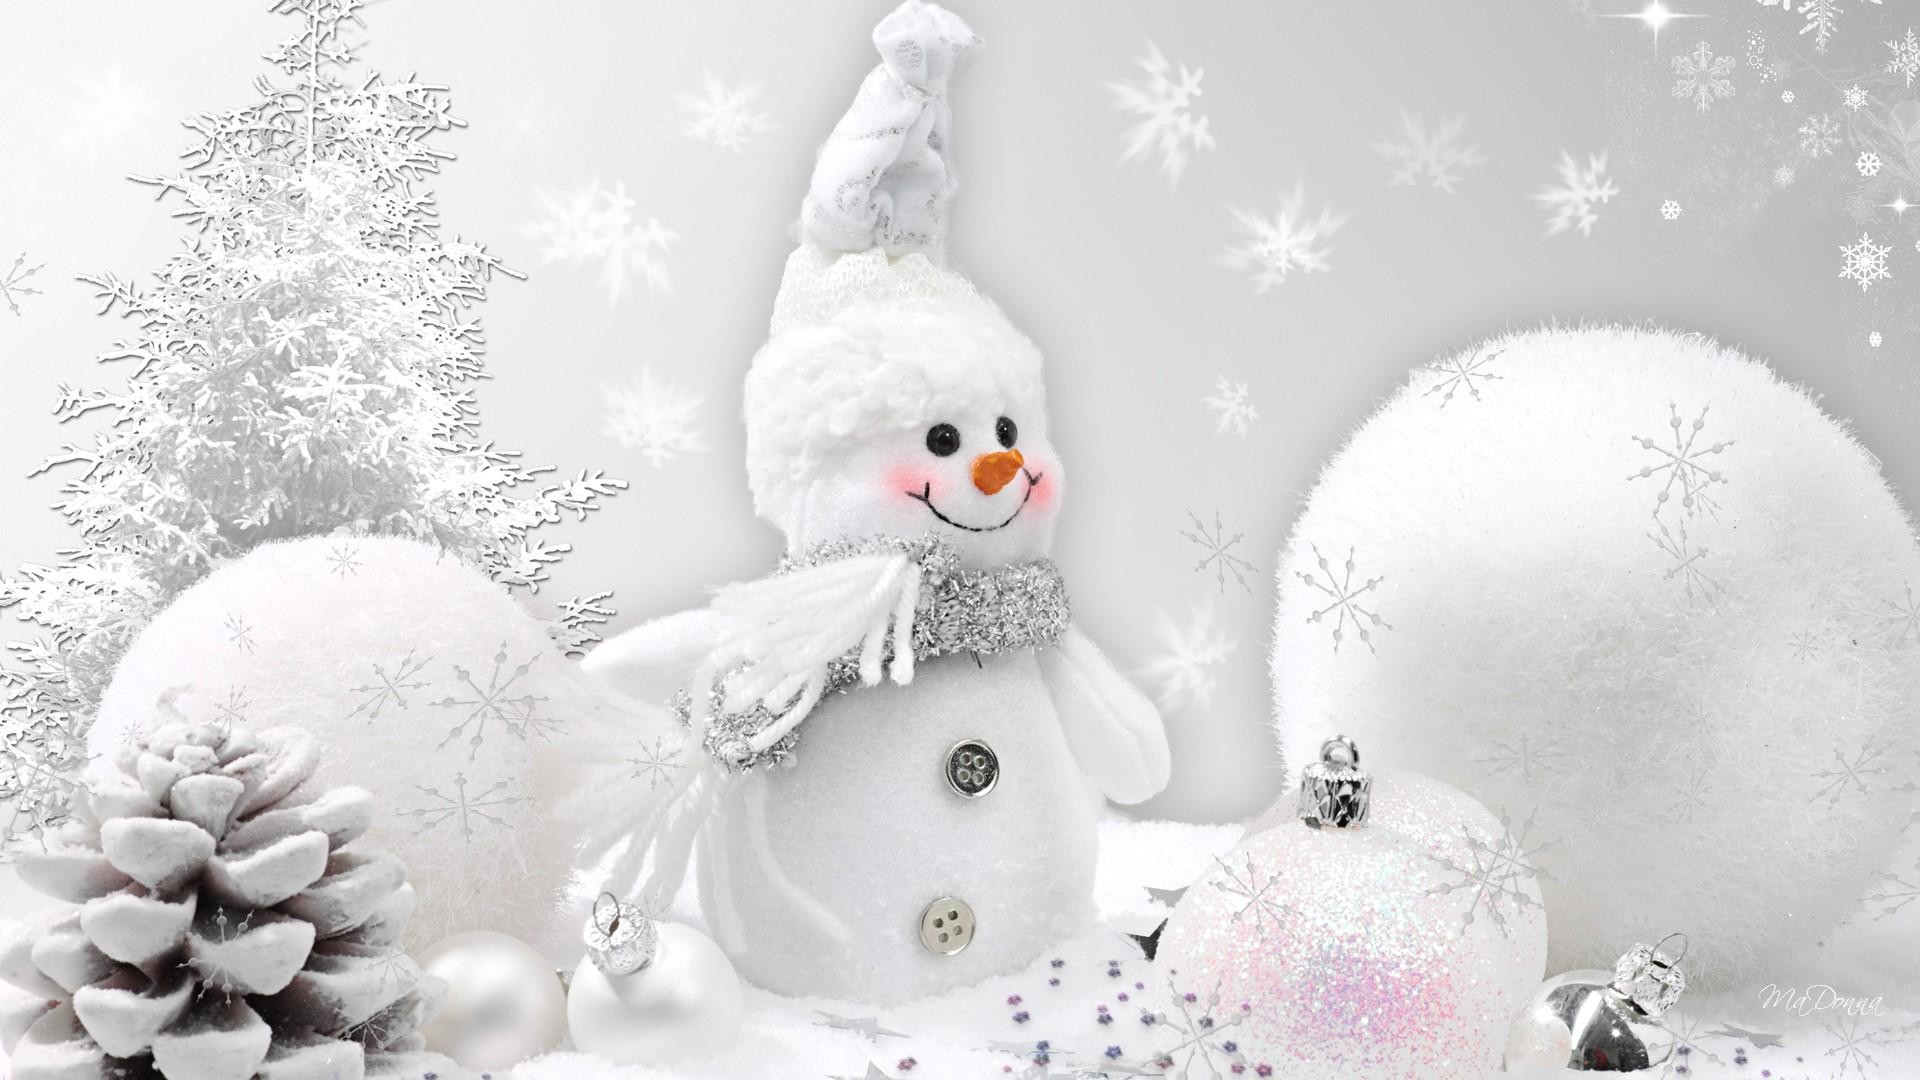 White Christmas Wallpaper 74 Images